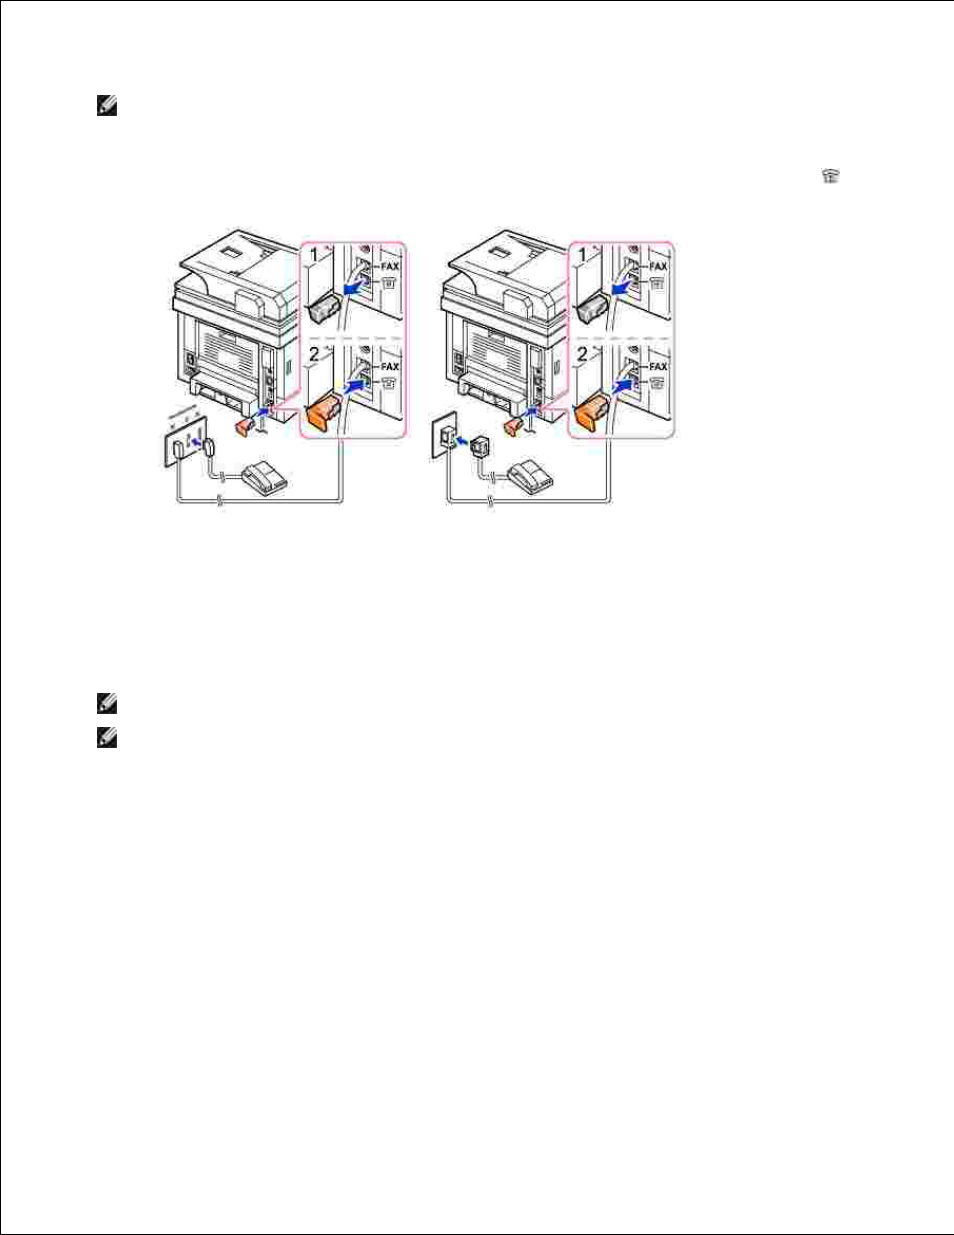 connecting the printer cable dell 2335dn user manual page 20 284 rh manualsdir com dell 2335dn service manual download